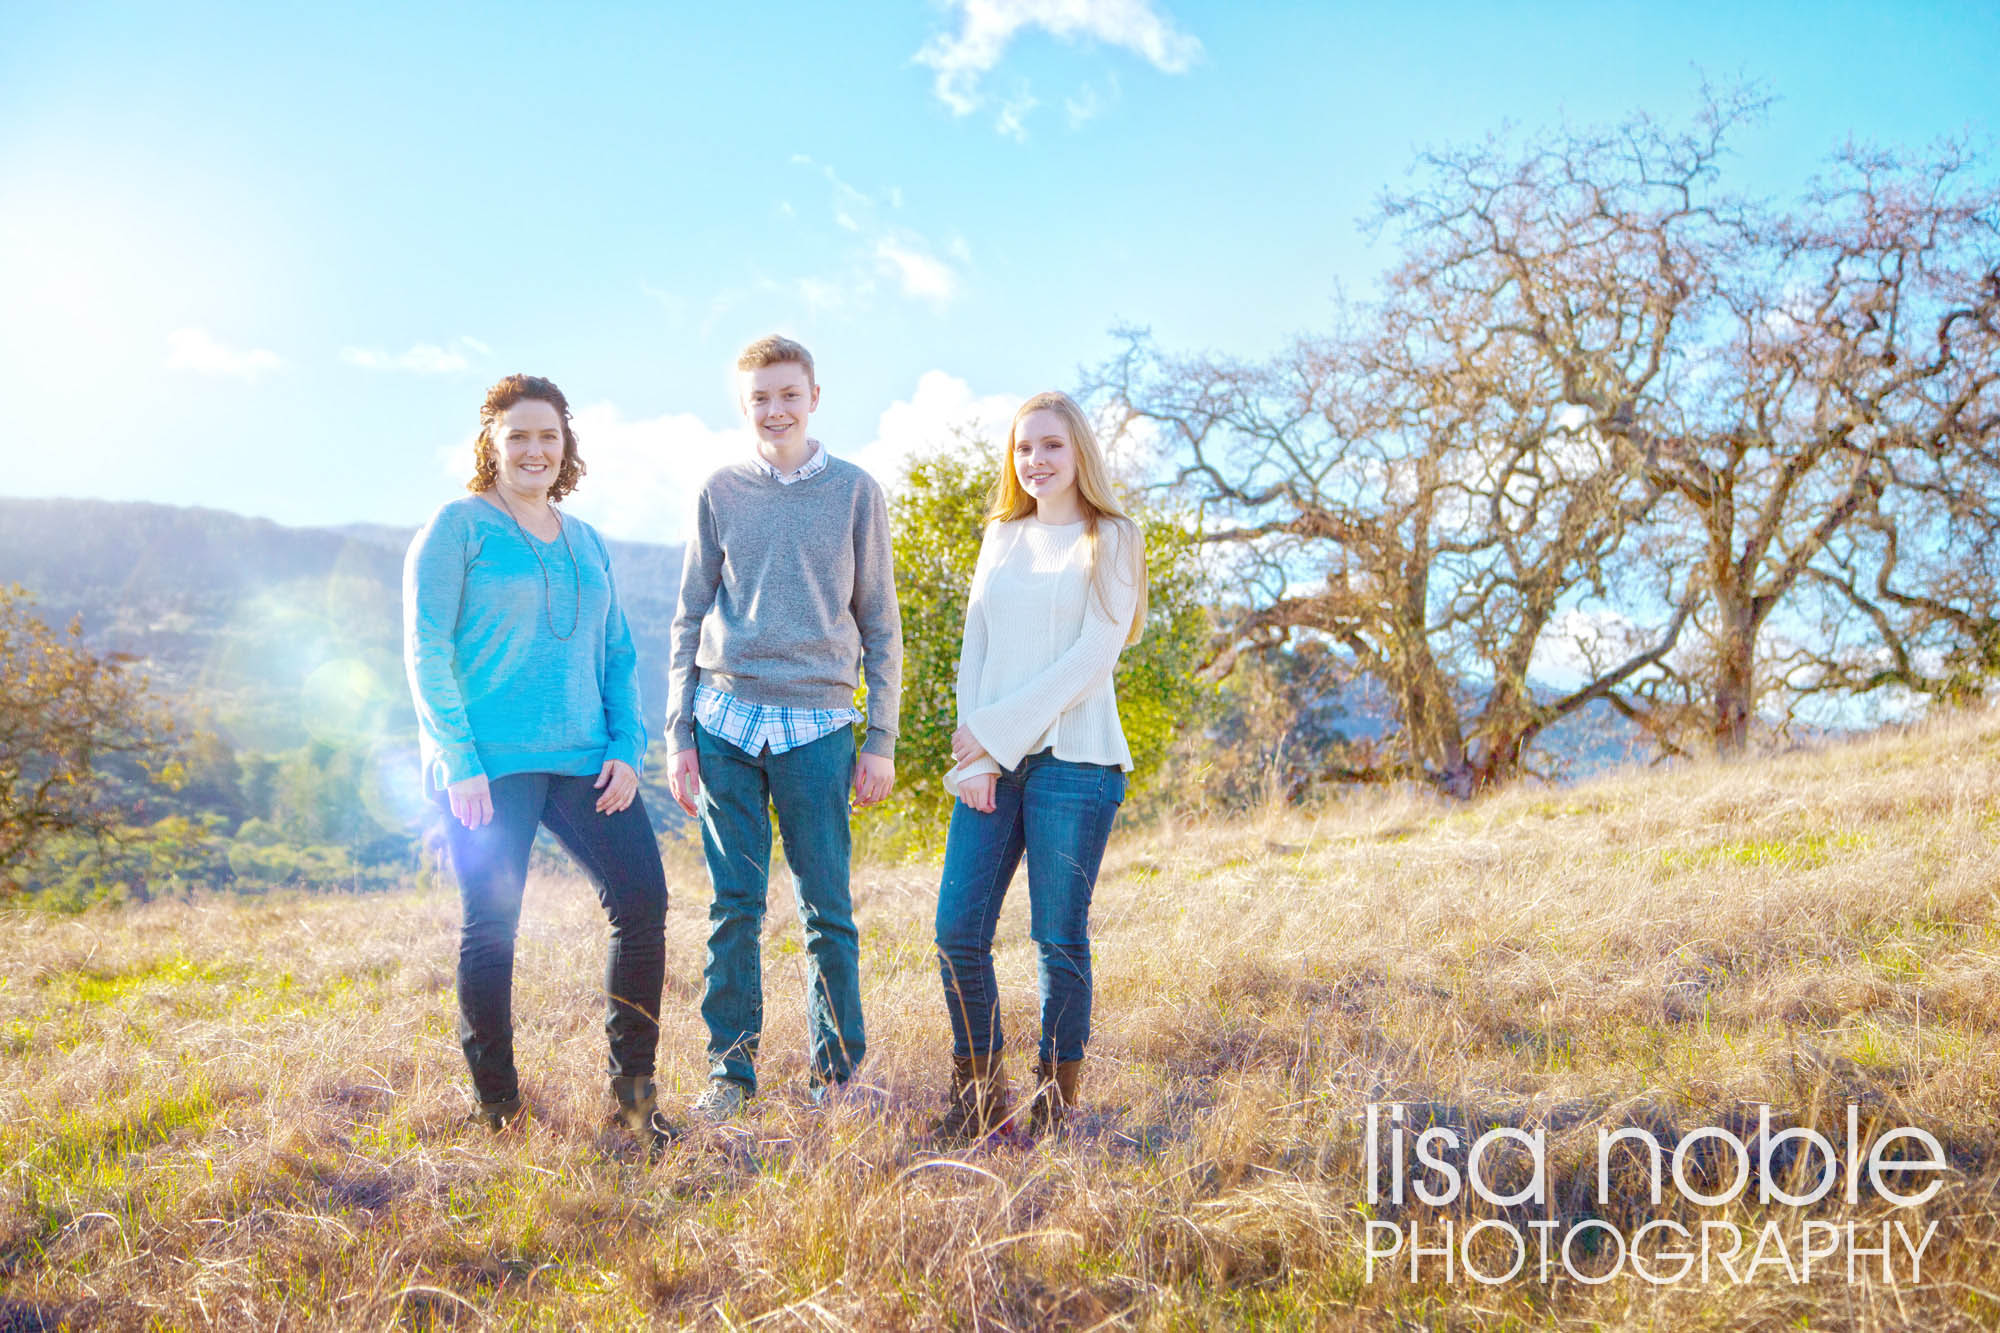 Family portrait in a grass field by Bay Area professional photographer Lisa Noble